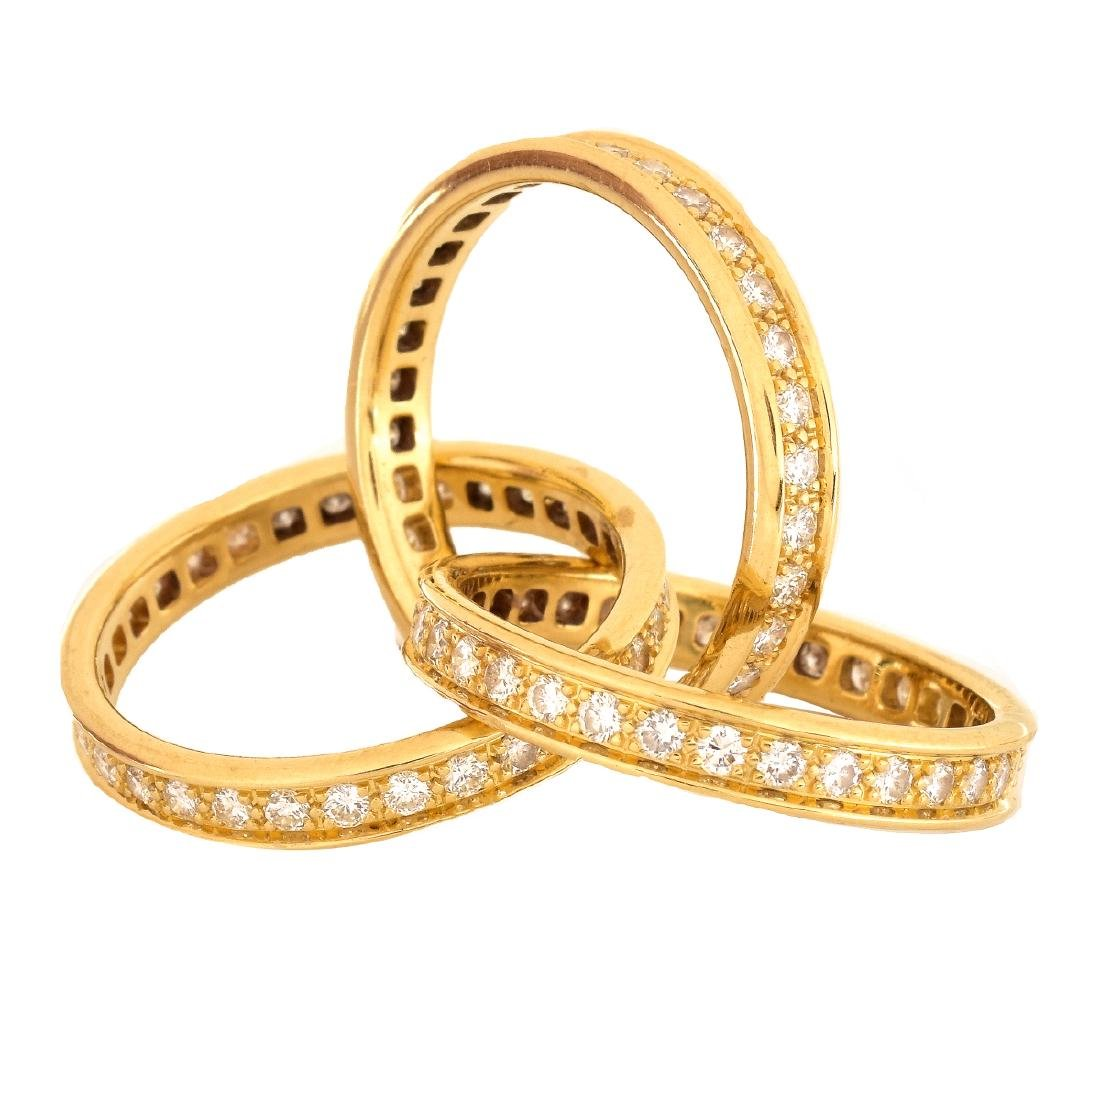 Cartier Diamond and 18K Gold Rolling Ring